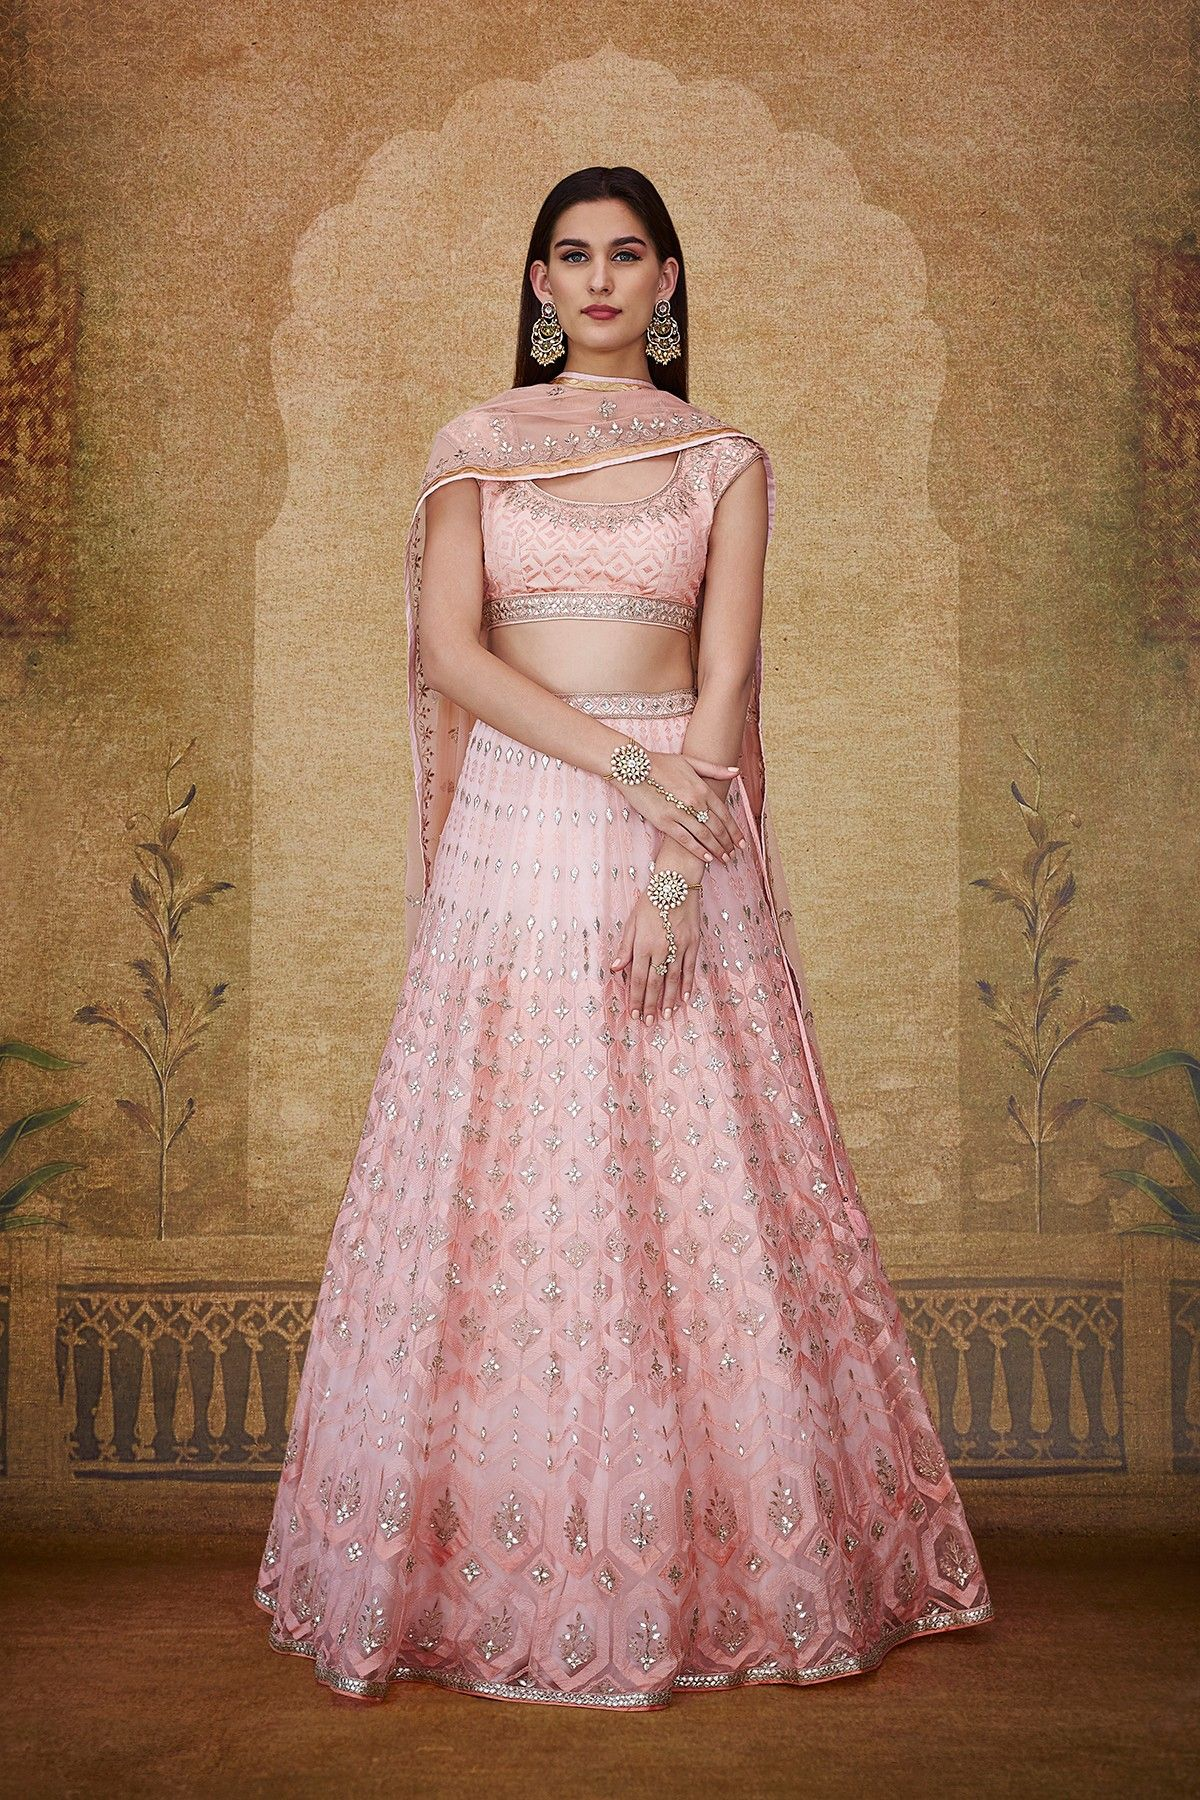 d9cbb04f61 A blush organza choli paired with a blush organza lehenga, styled with a  blush net dupatta, exquisitely embroidered with gota patti, tikki, resham,  pearl, ...